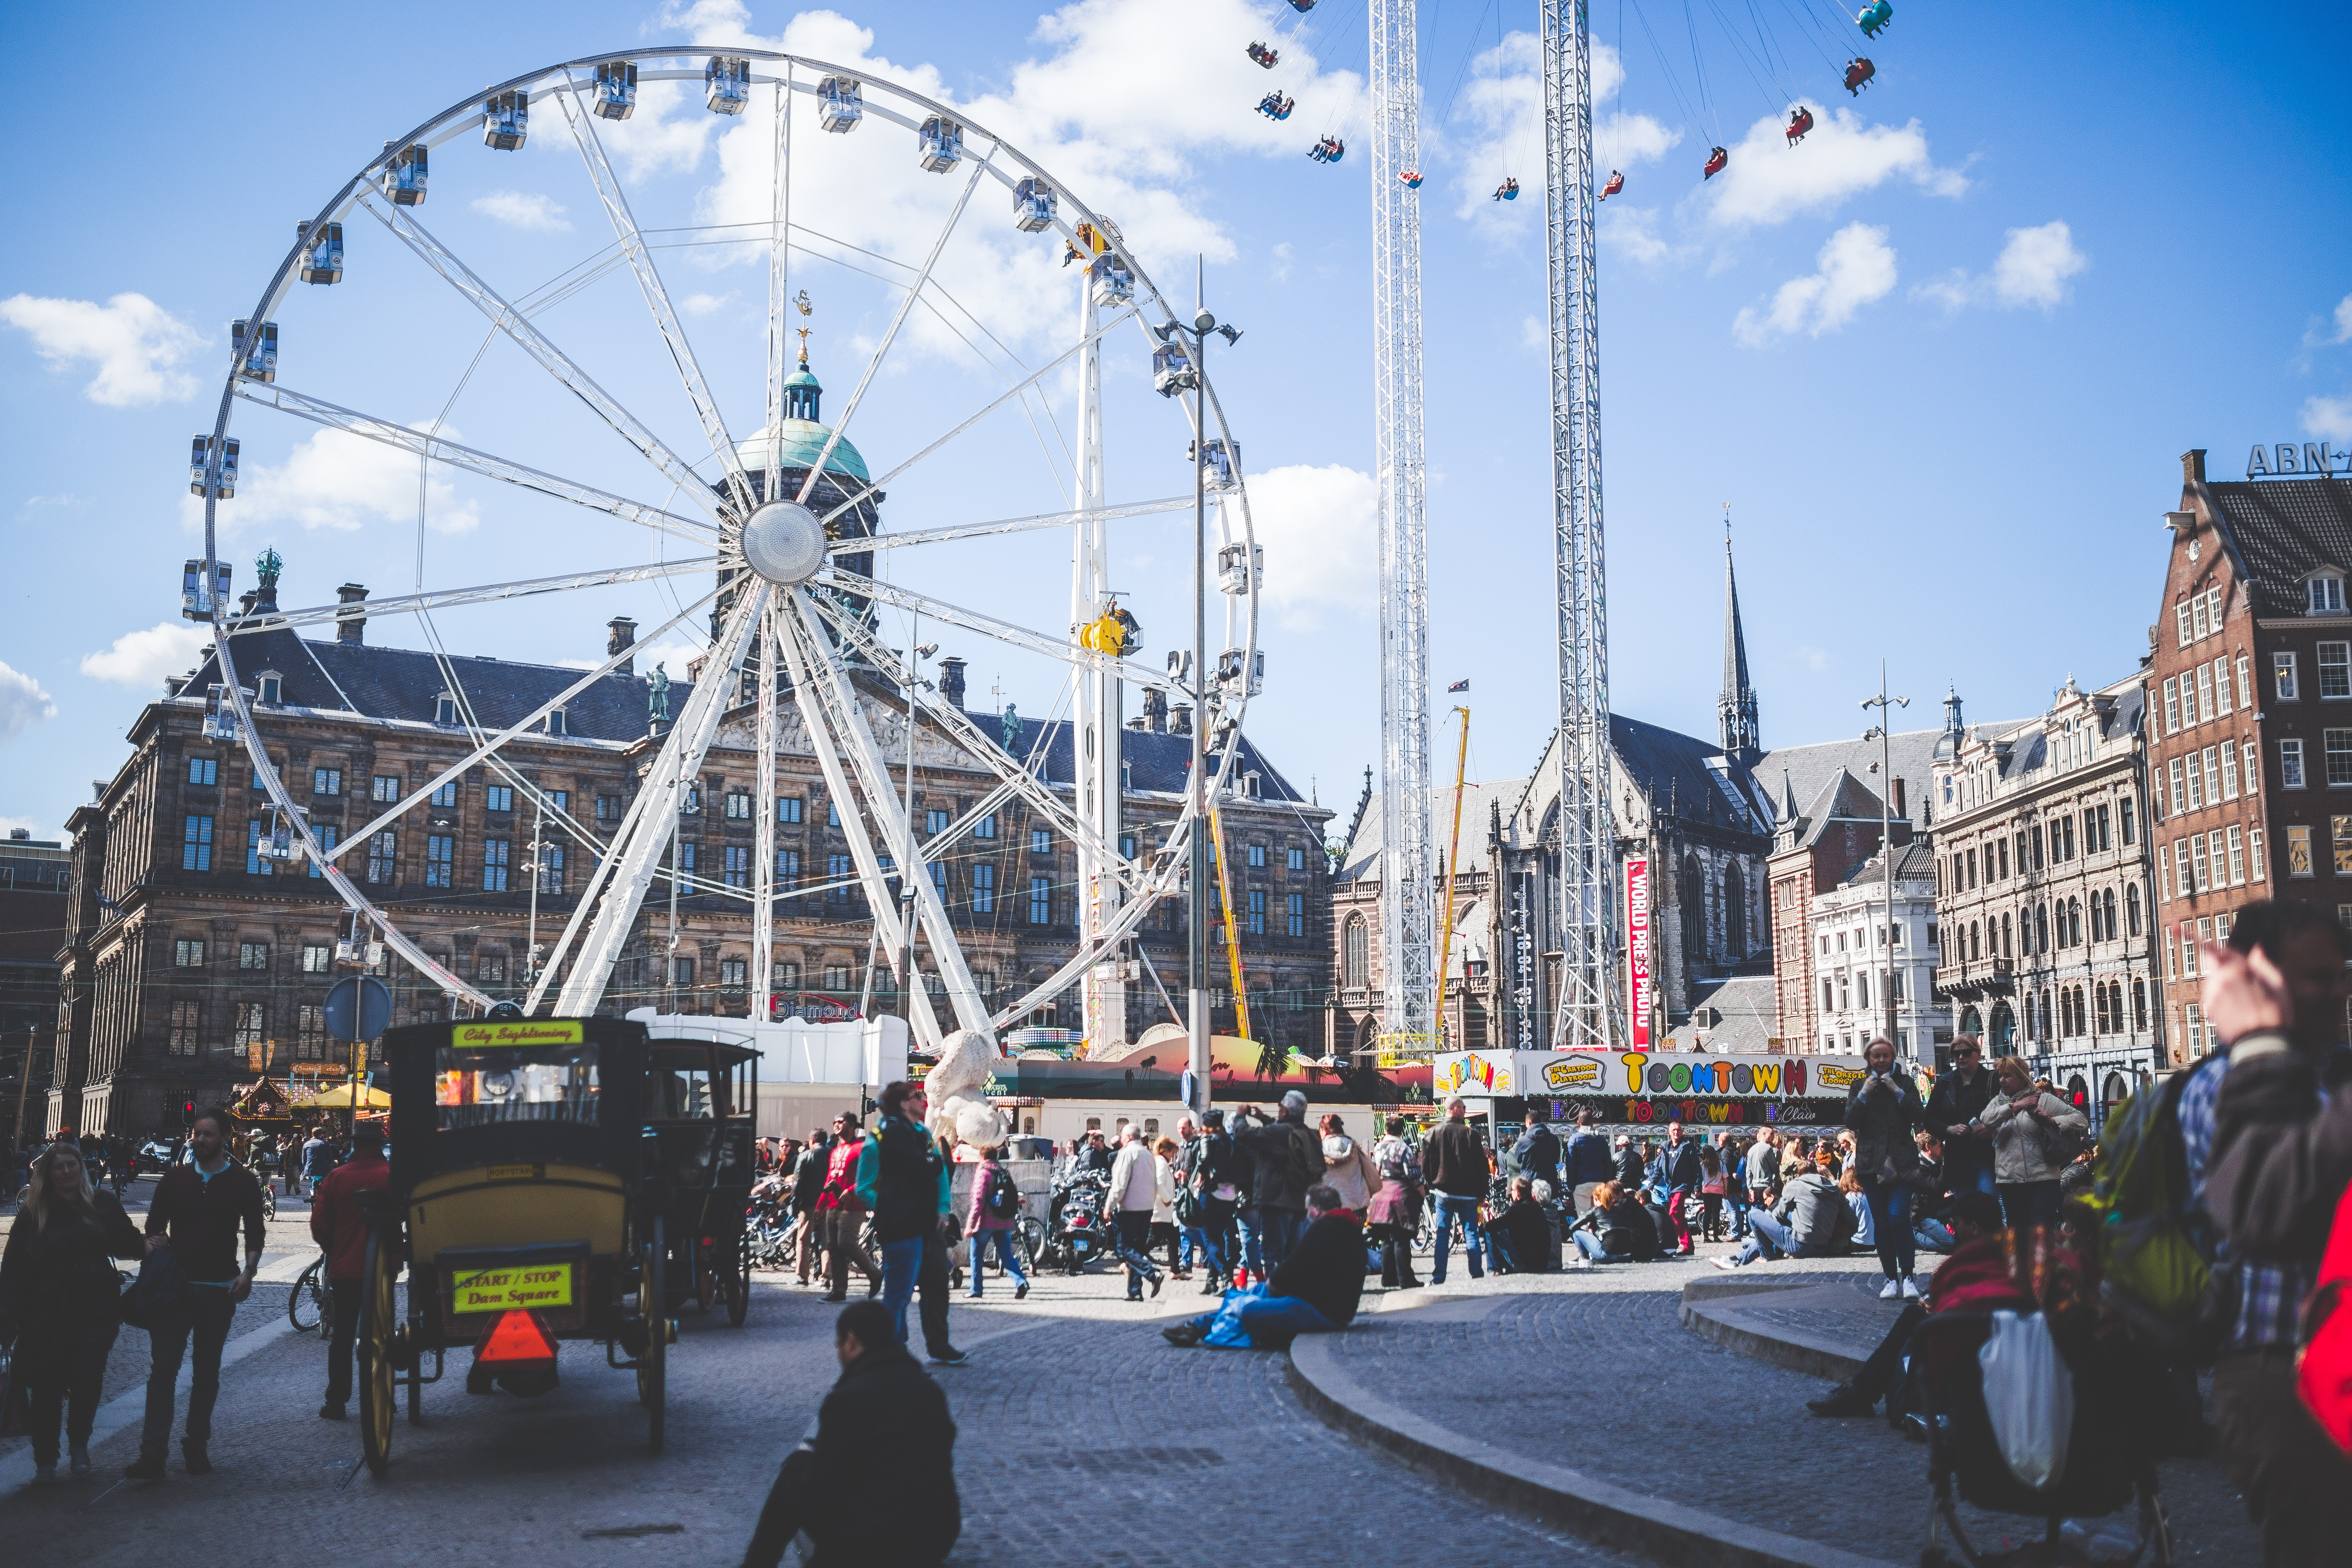 Ferris Wheel Beside Brown Buildings and People Under Blue Cloudy Sky at Daytime, Blue sky, People, Vehicle, Town, HQ Photo